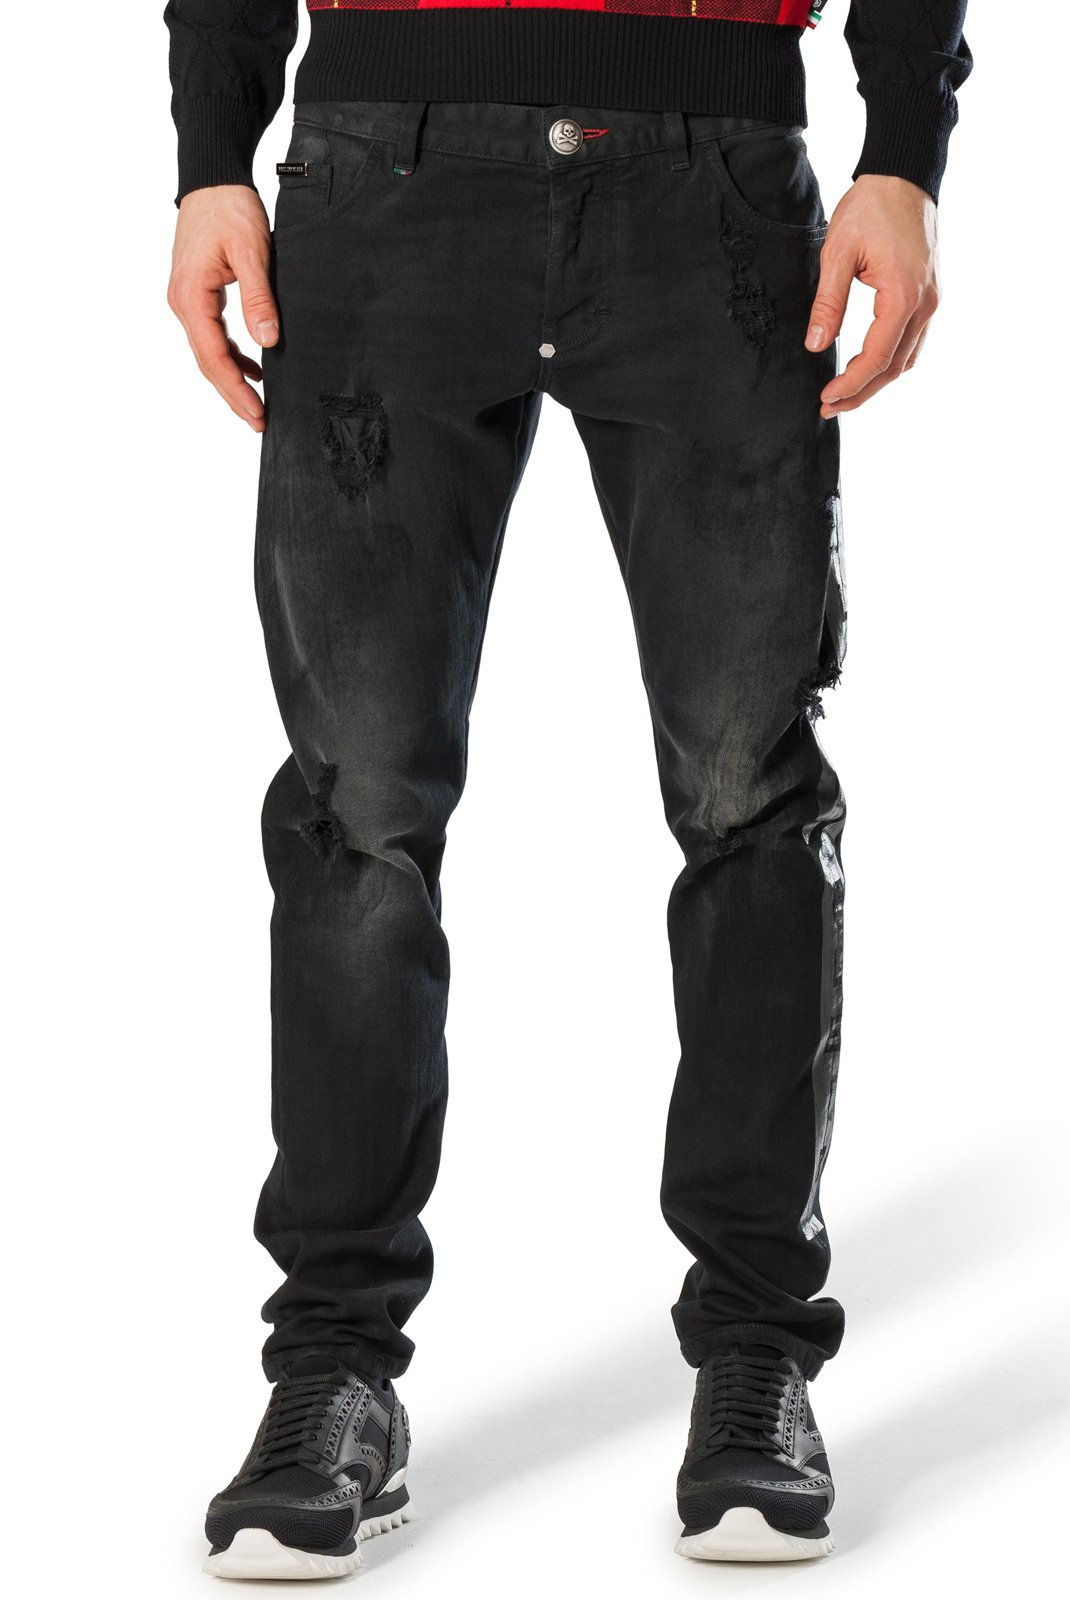 Jeans  Philipp plein MDT0415 JOROGUMU 02ON ONI